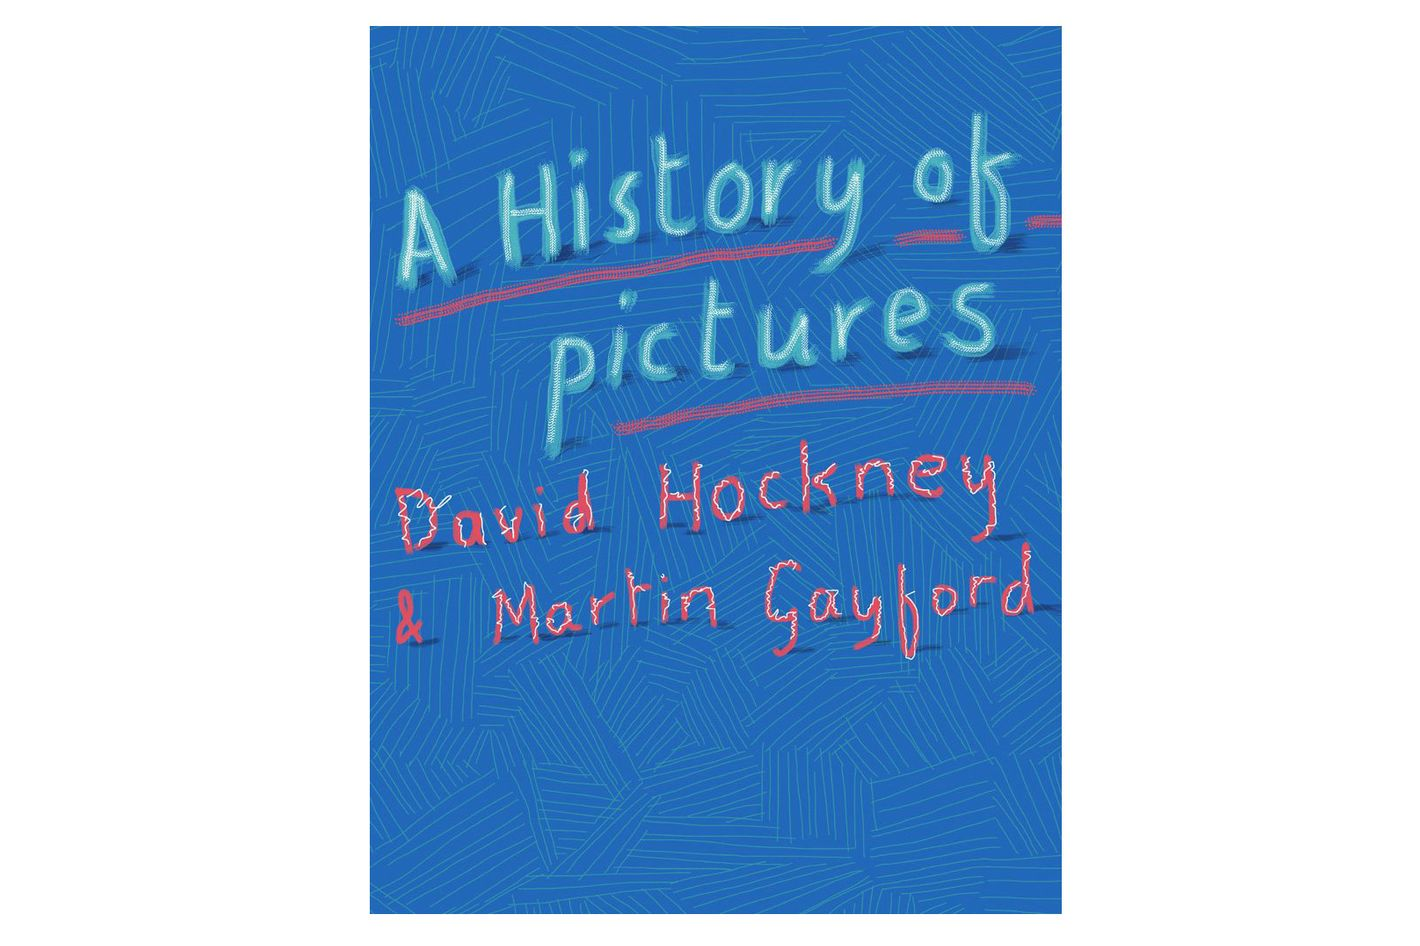 A History of Pictures, by David Hockney and Martin Gayford